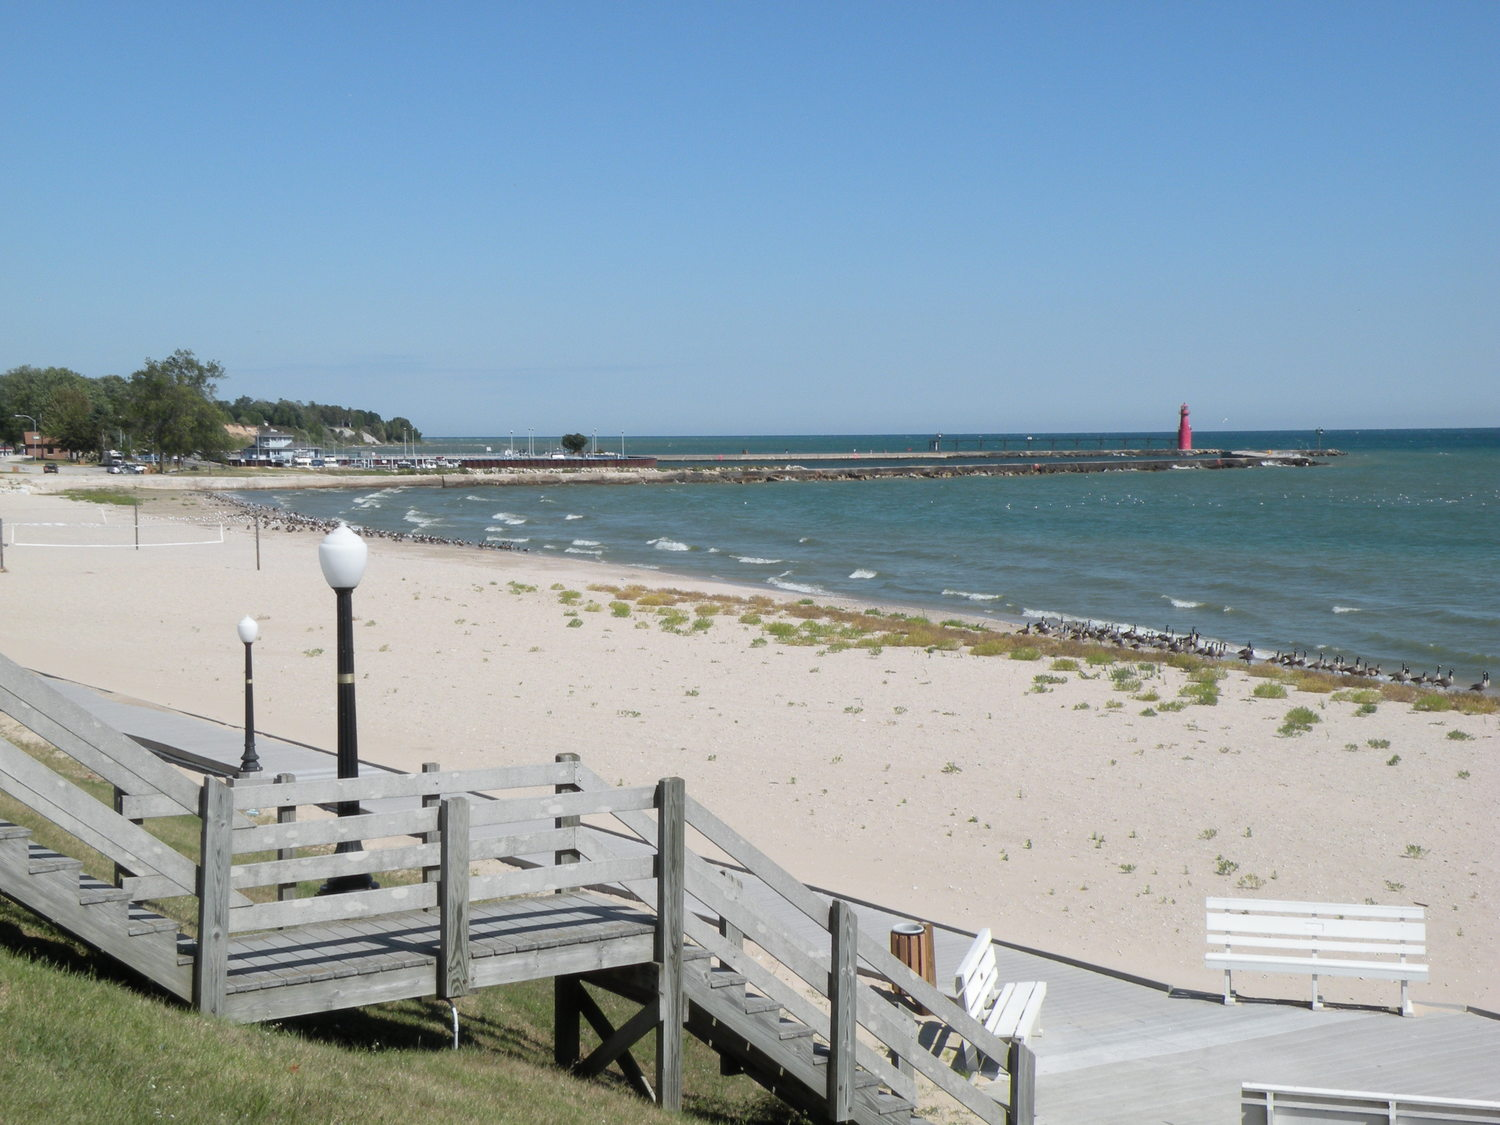 Beach with Marina in background.jpg